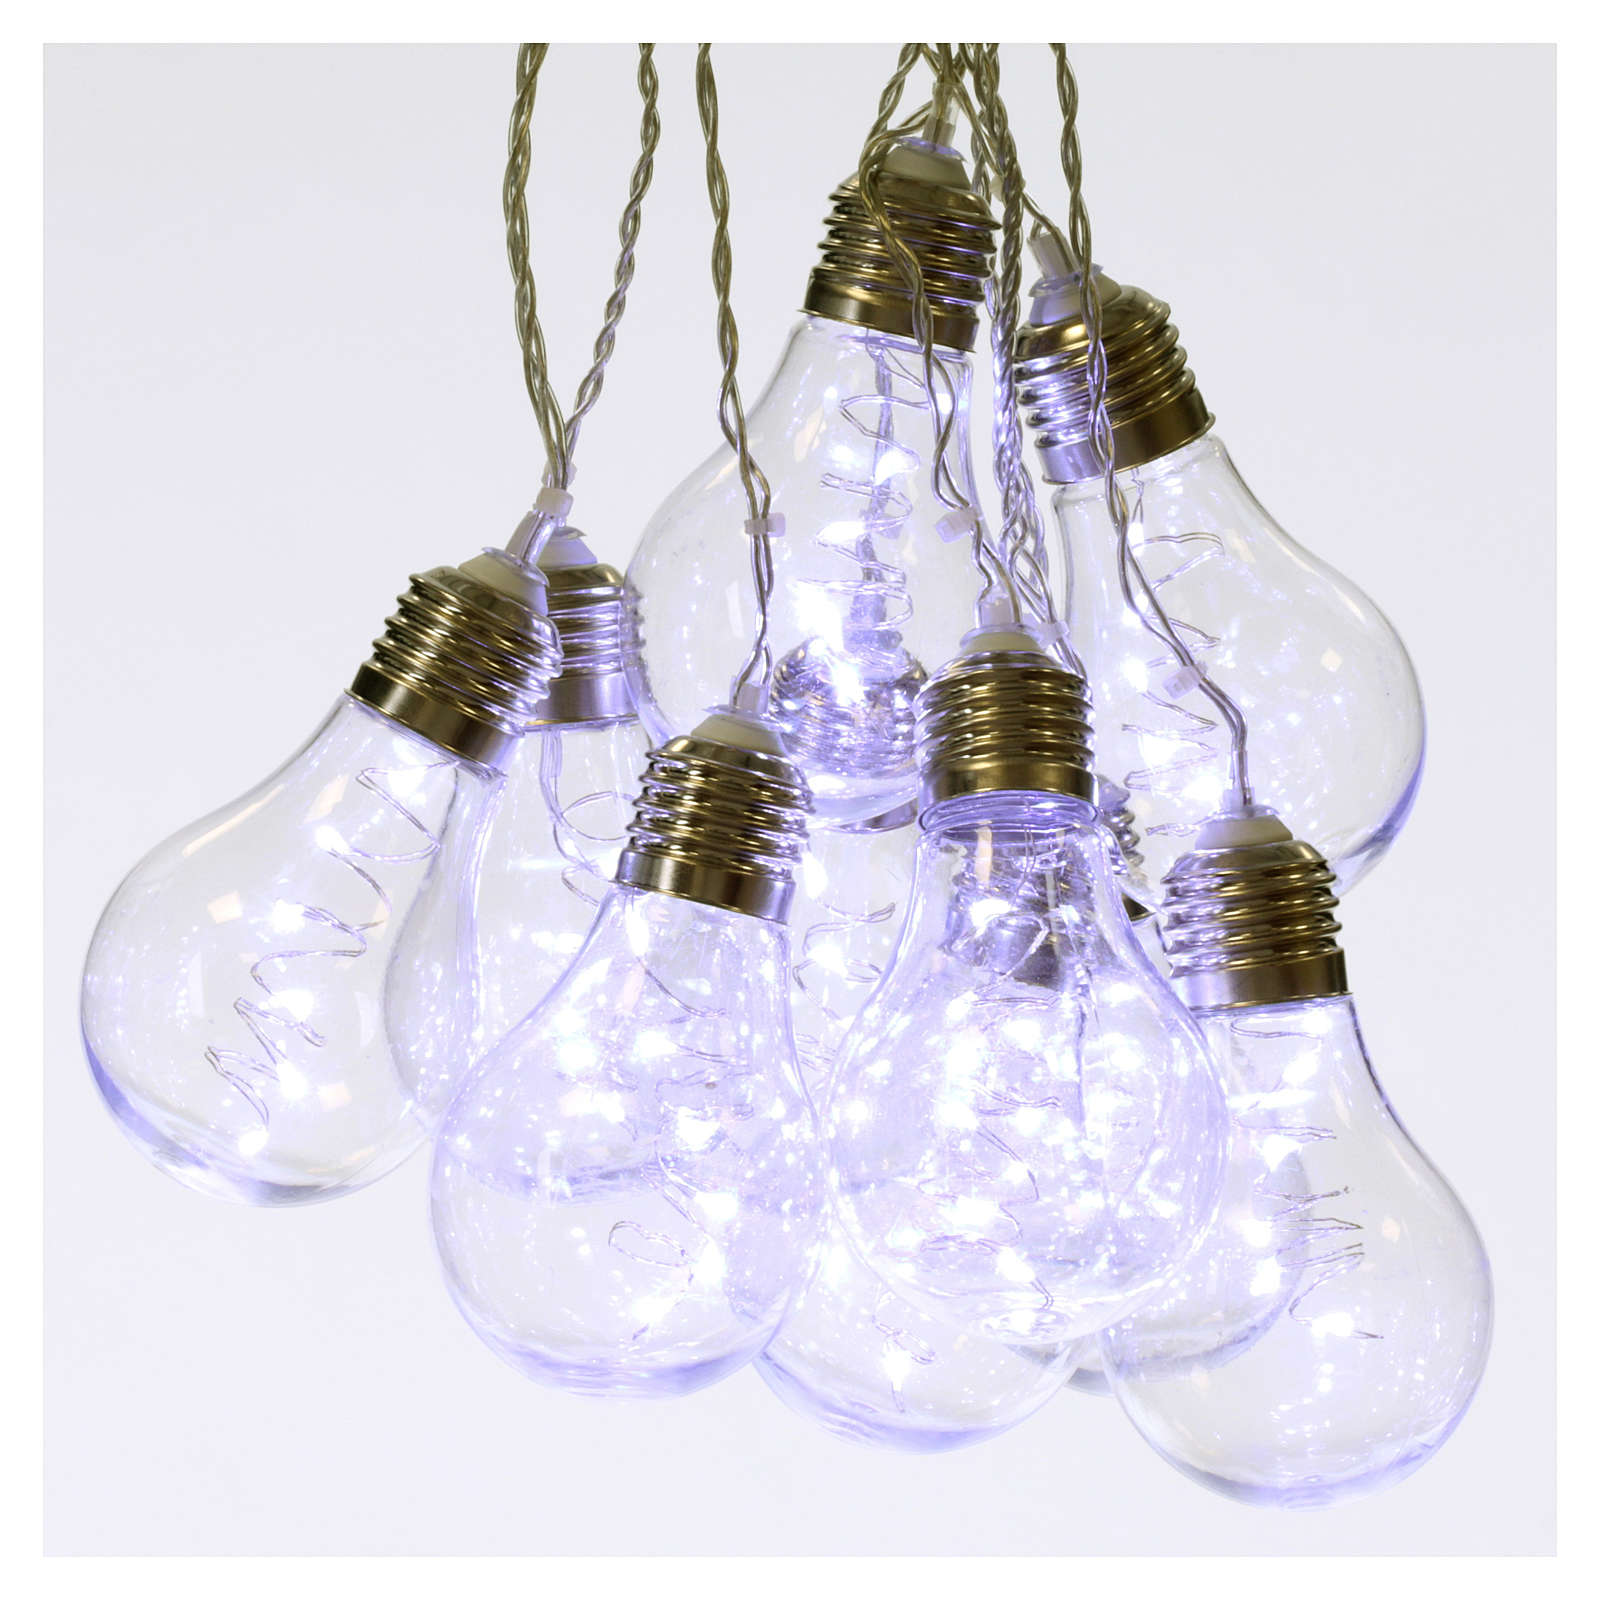 illuminated light curtain 10 light bulbs 60 nanoleds ice white internal and external use 3